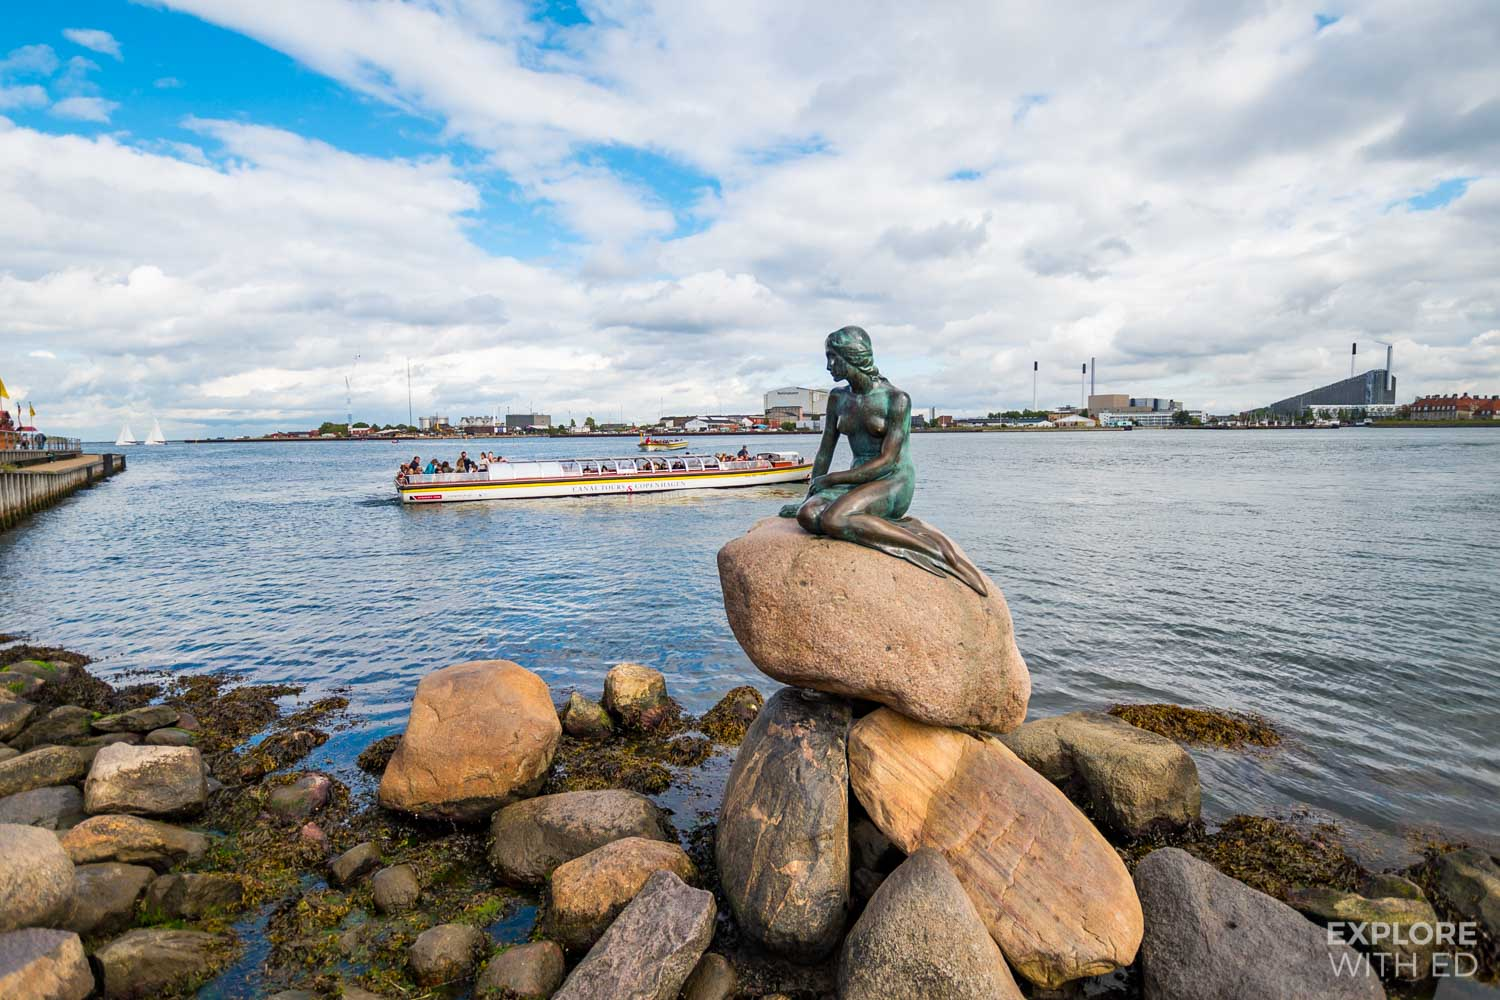 Visiting Copenhagen on a cruise with a canal tour